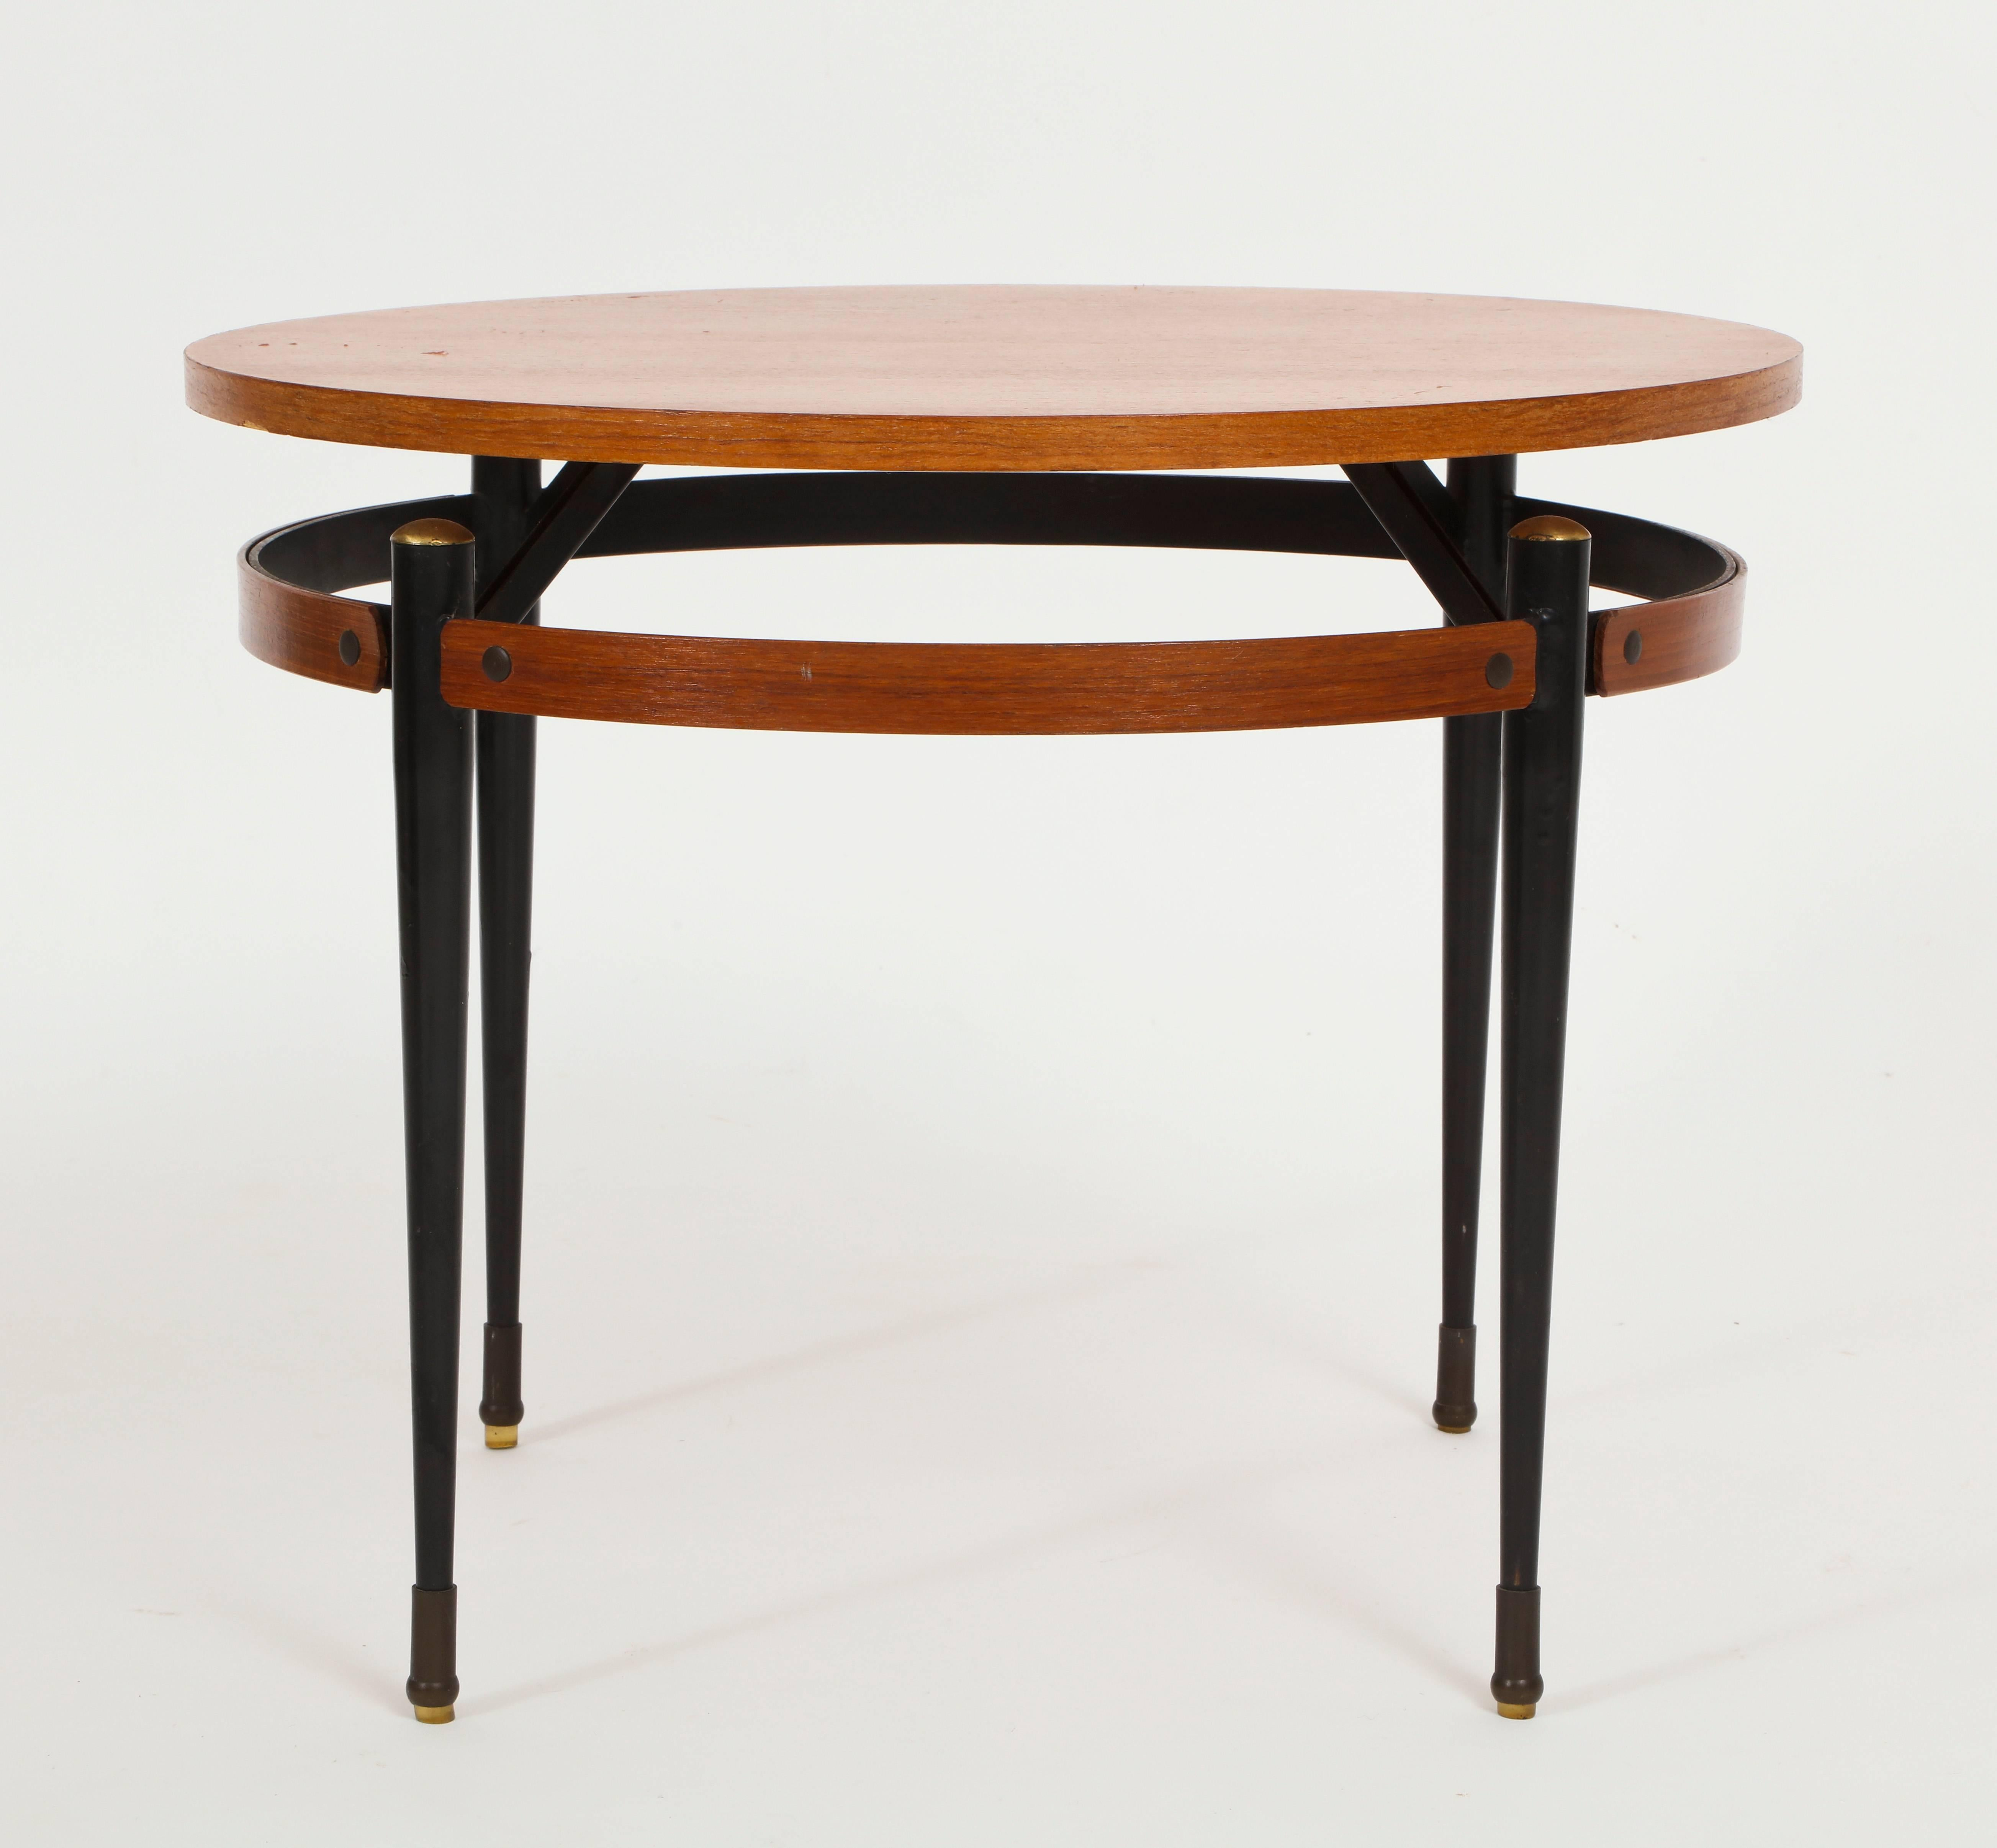 Italian Ponti Style Round Side Table With Metal Legs, Italy, 1950, Mid